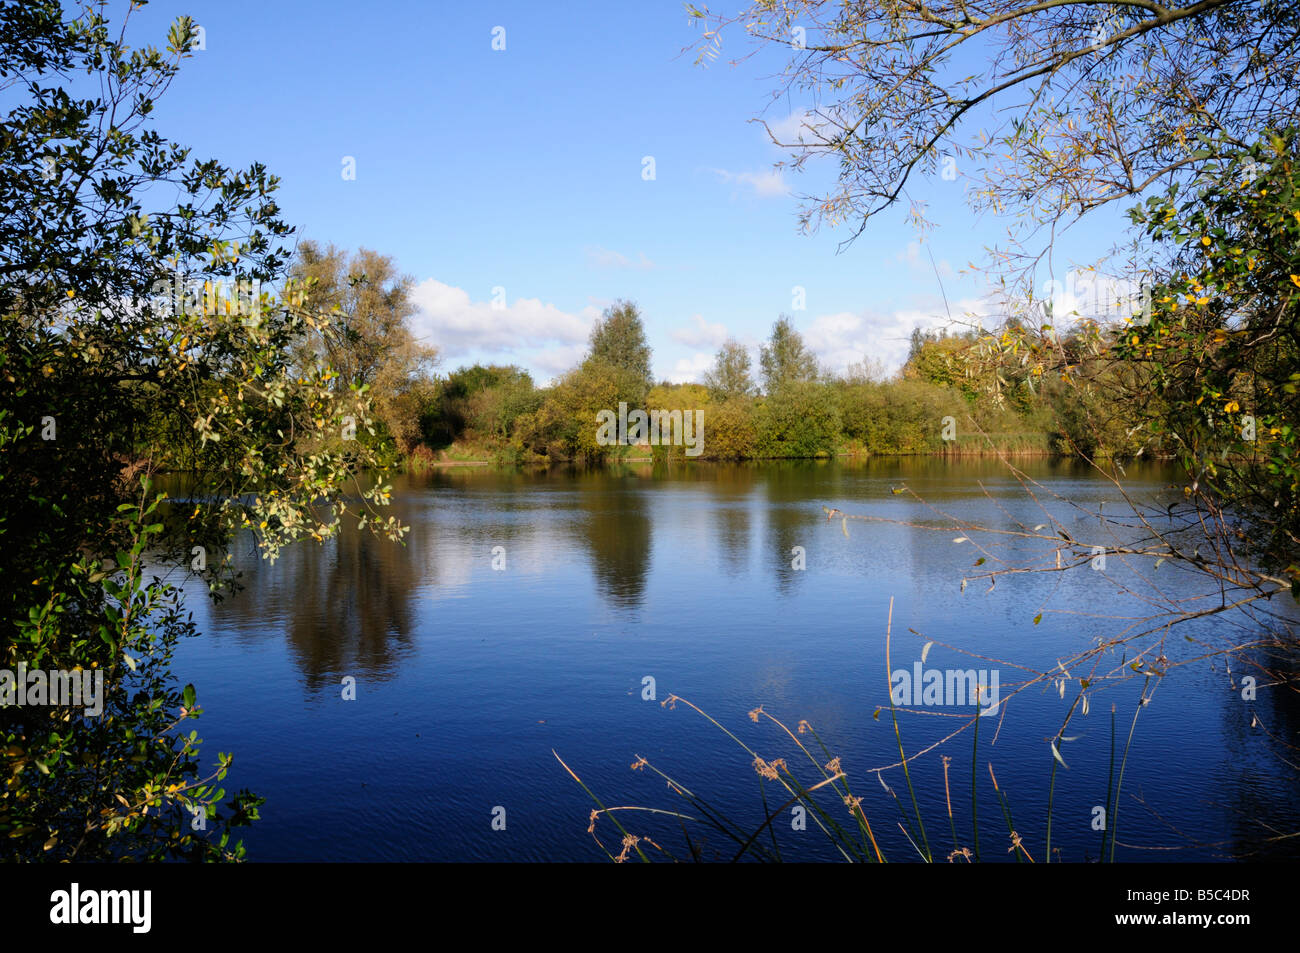 Milton Country Park, Cambridgeshire, England UK - Stock Image